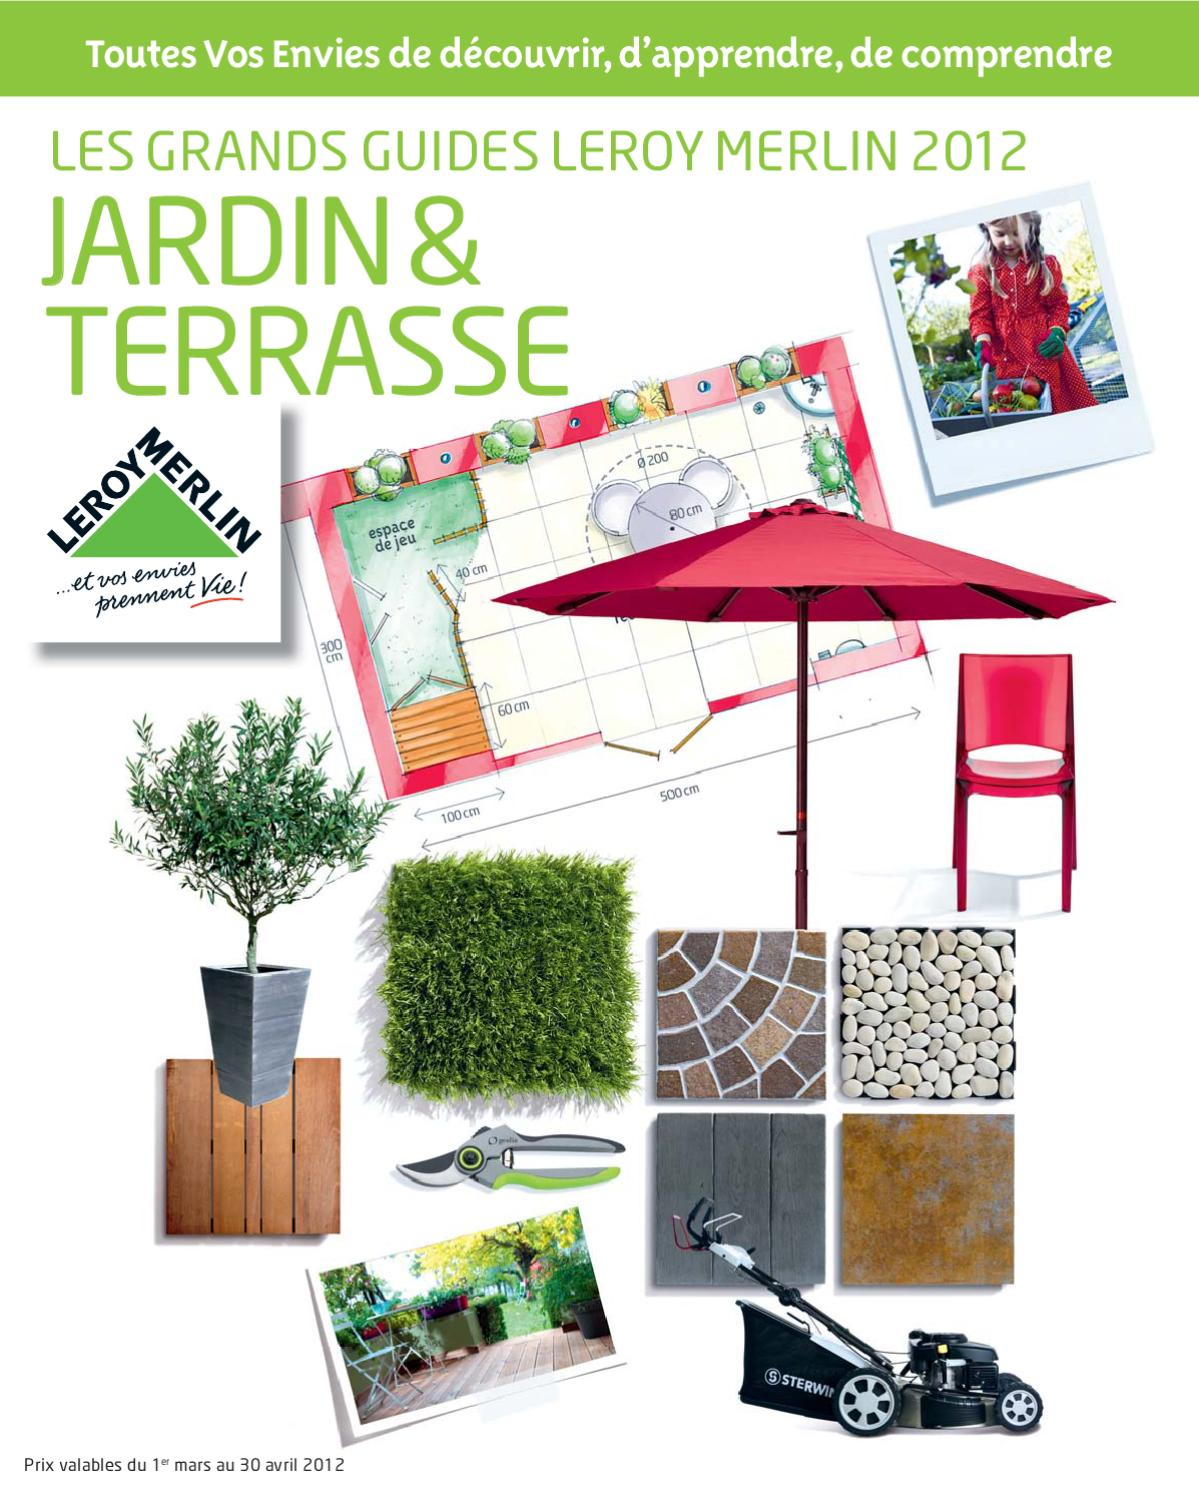 Amenagement Terrasse Leroy Merlin Catalogue Jardin Leroy Merlin